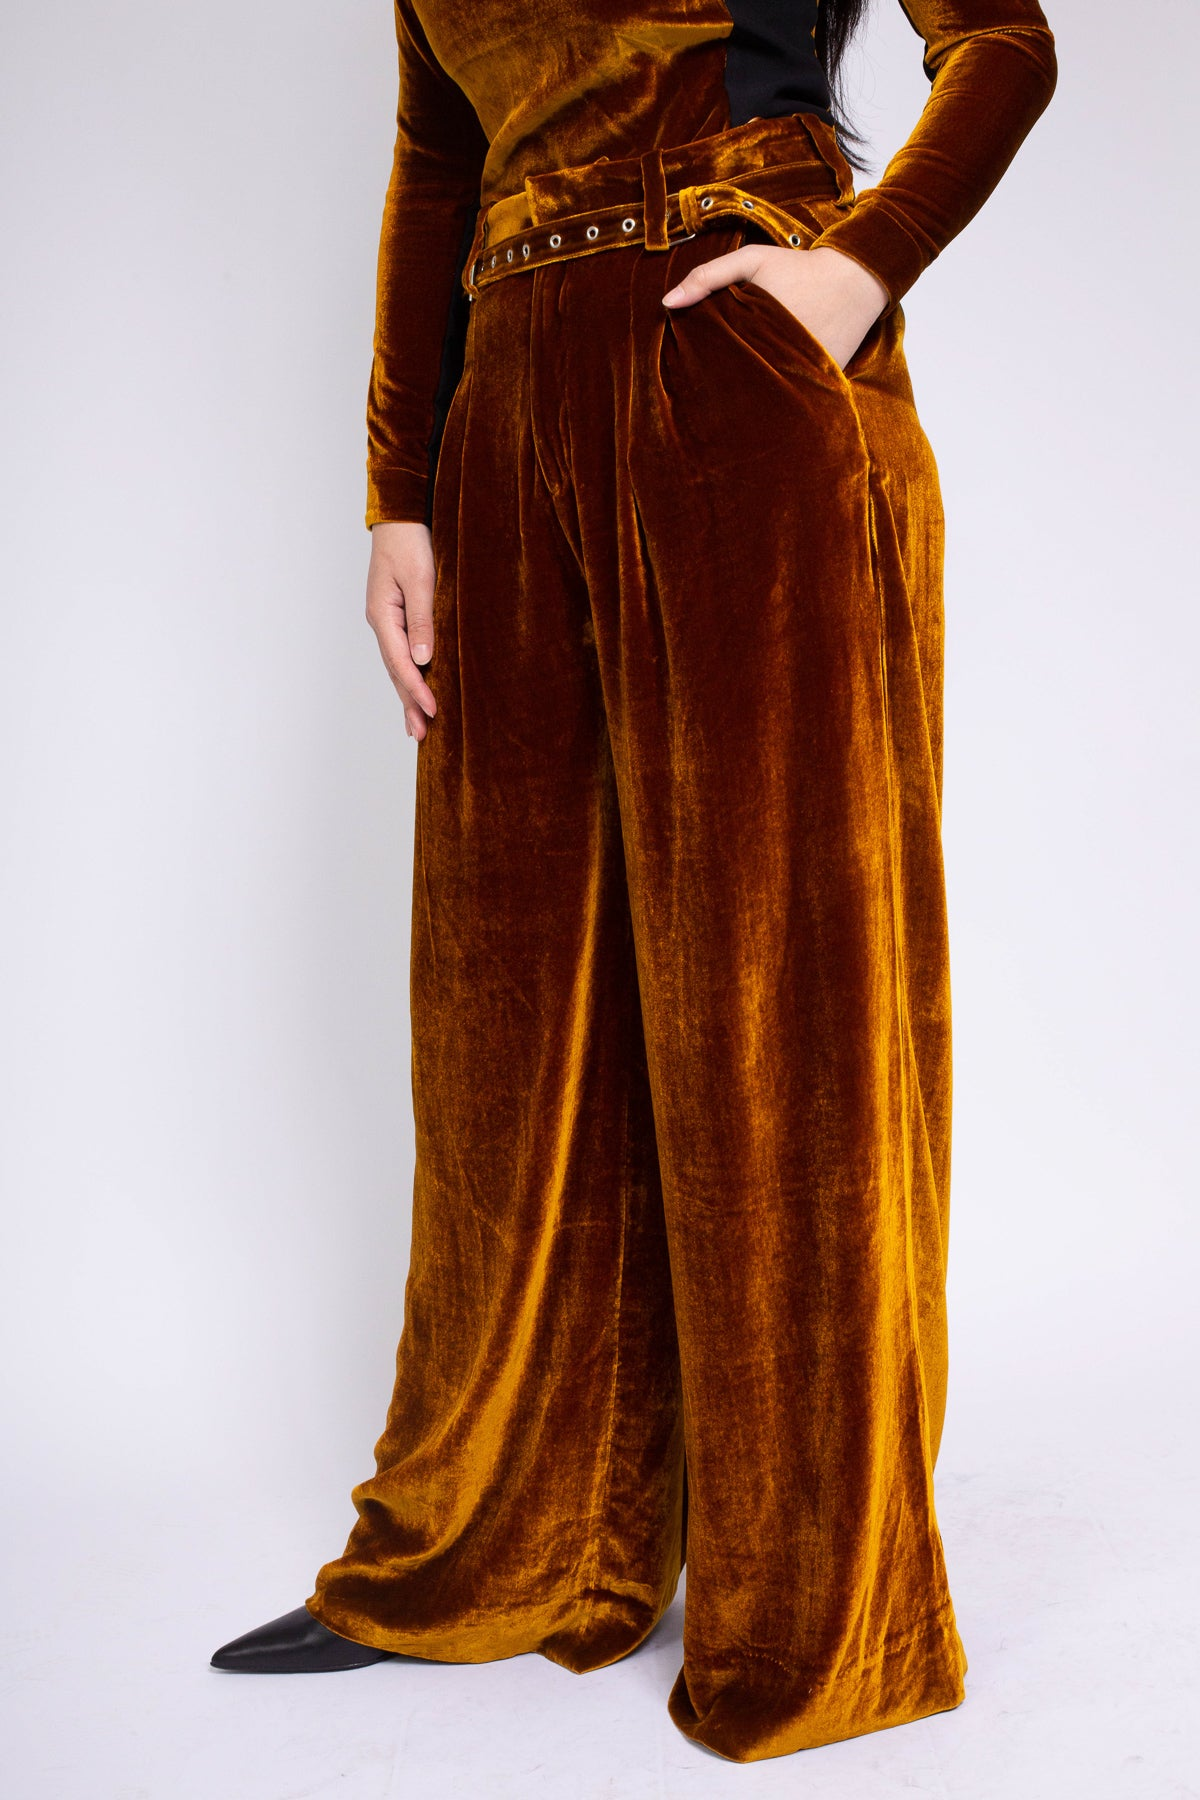 PRE-OWNED / VELVET DARK GOLD WIDE LEG TROUSERS - marques-almeida-dev